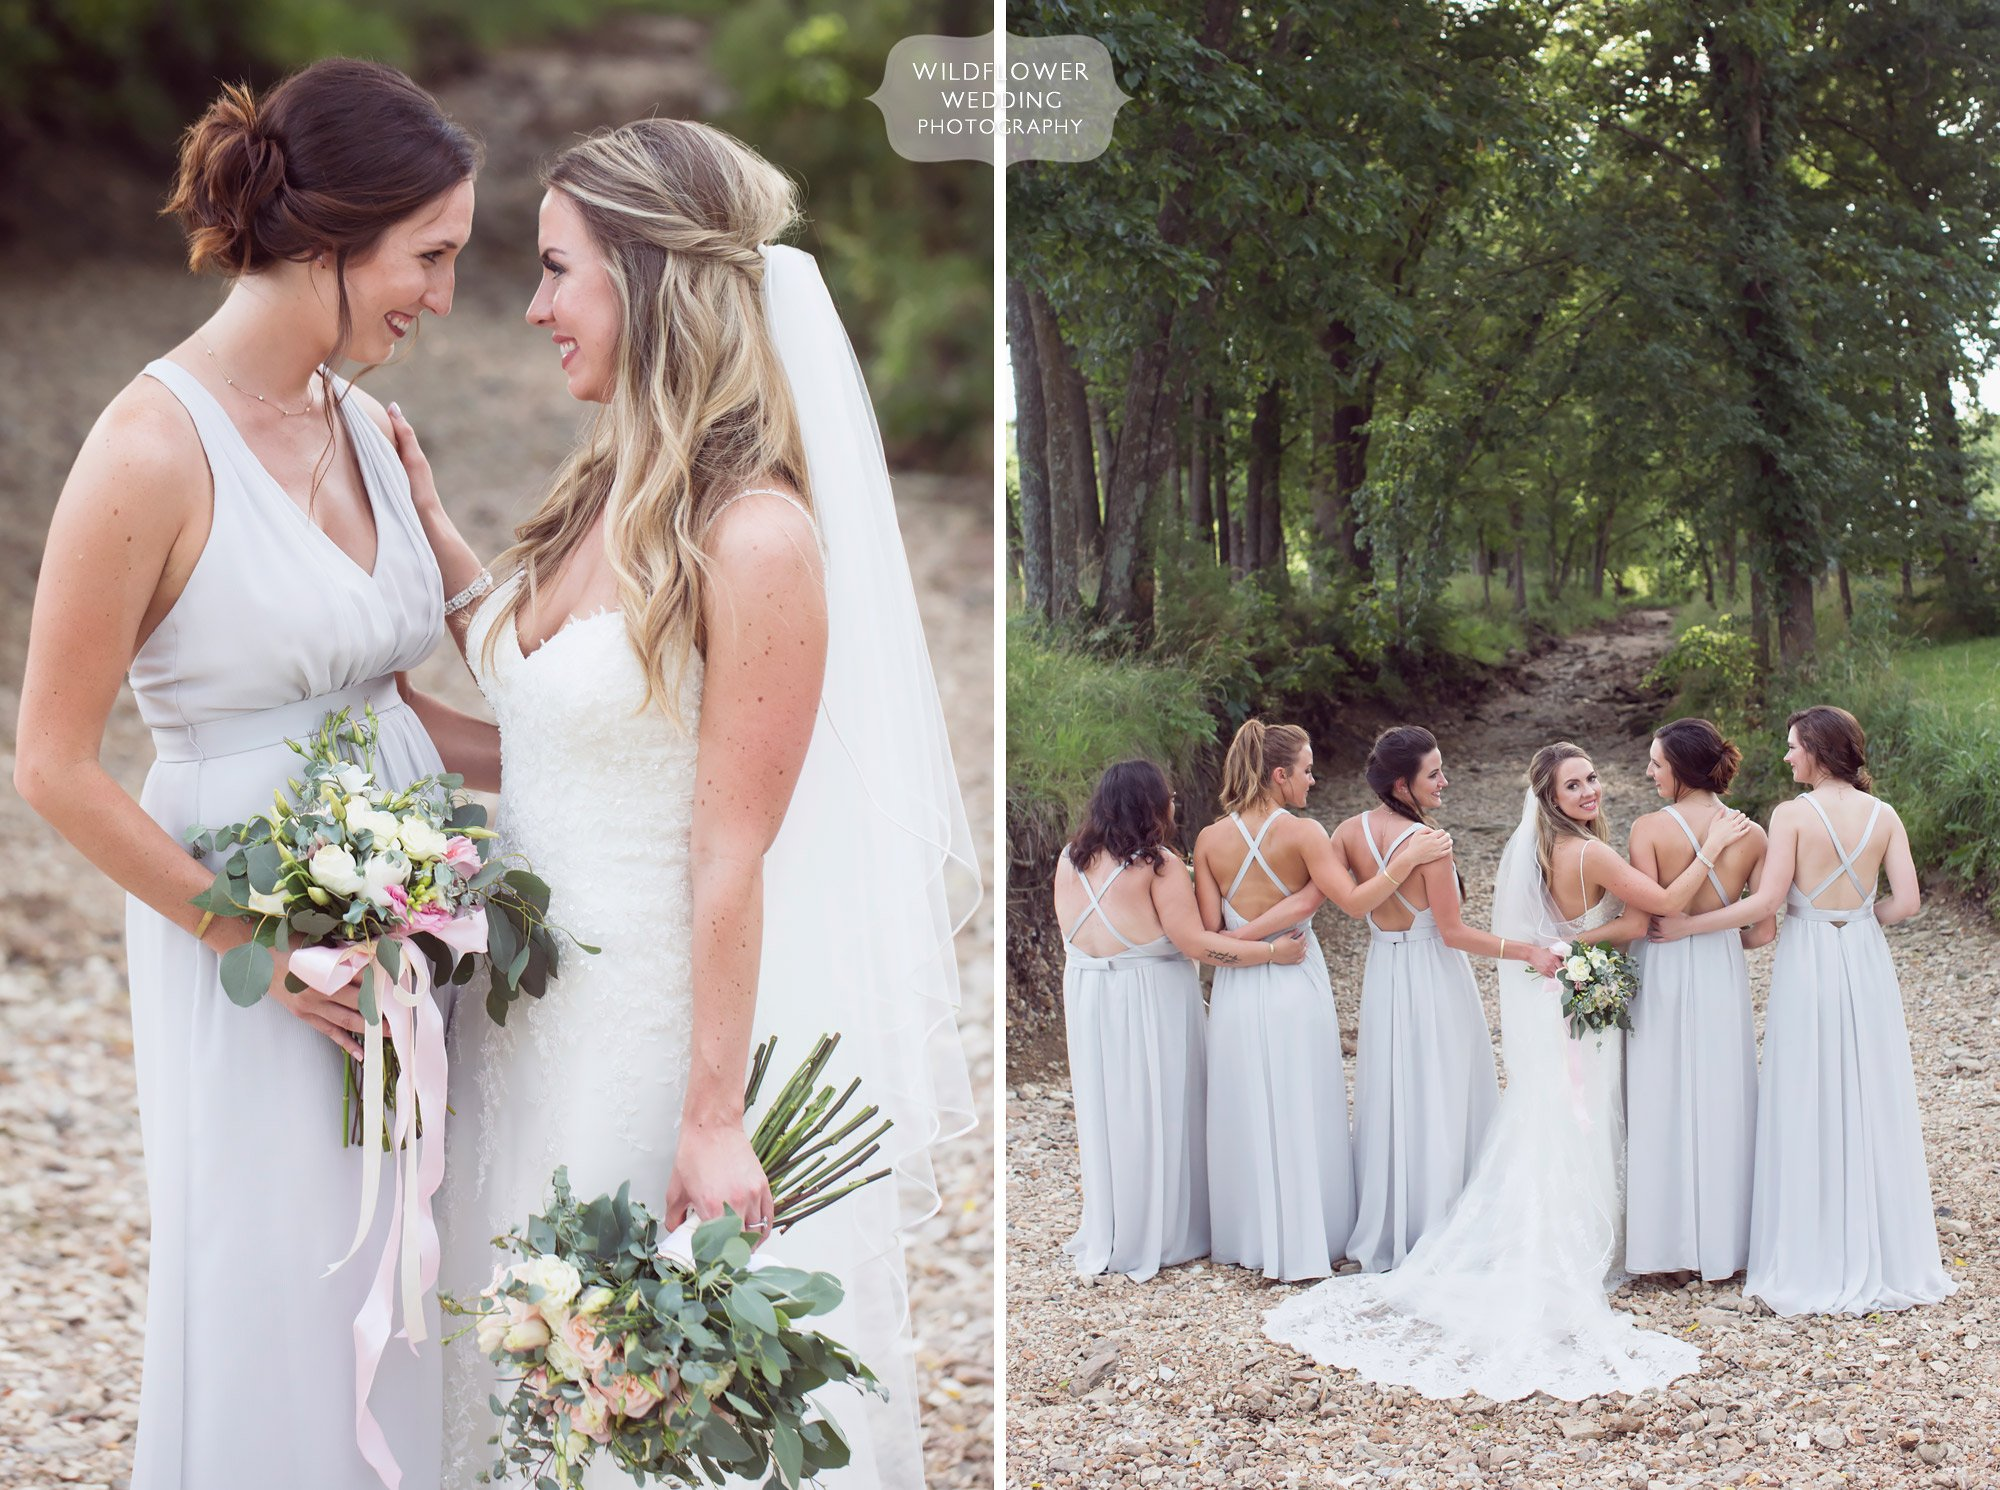 Natural wedding photography of the bride and her wedding party in the creek at Kempker's Back 40.